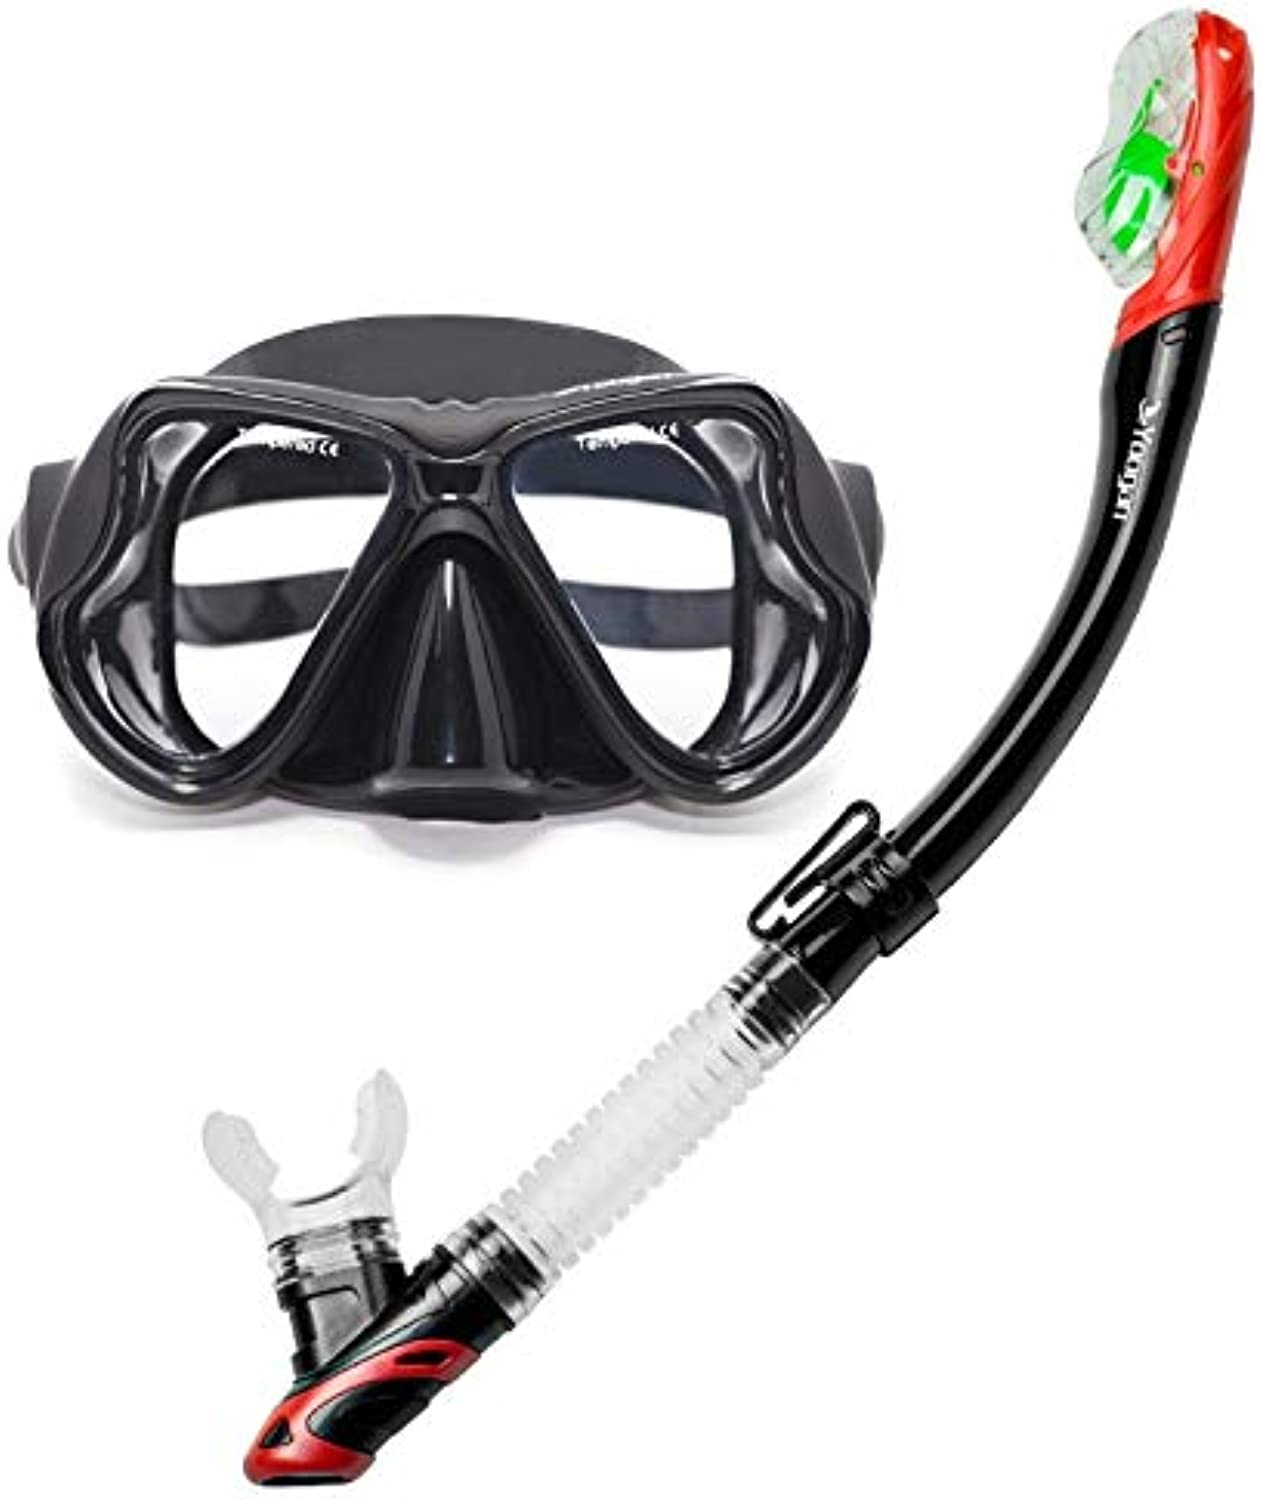 GuoBomatealliance Watersports Water Sports Yoogan Adult Full Dry Mask Breathing Tube Swimming Glass Diving Equipment Suit, Can Match Myopic Lens(Black)